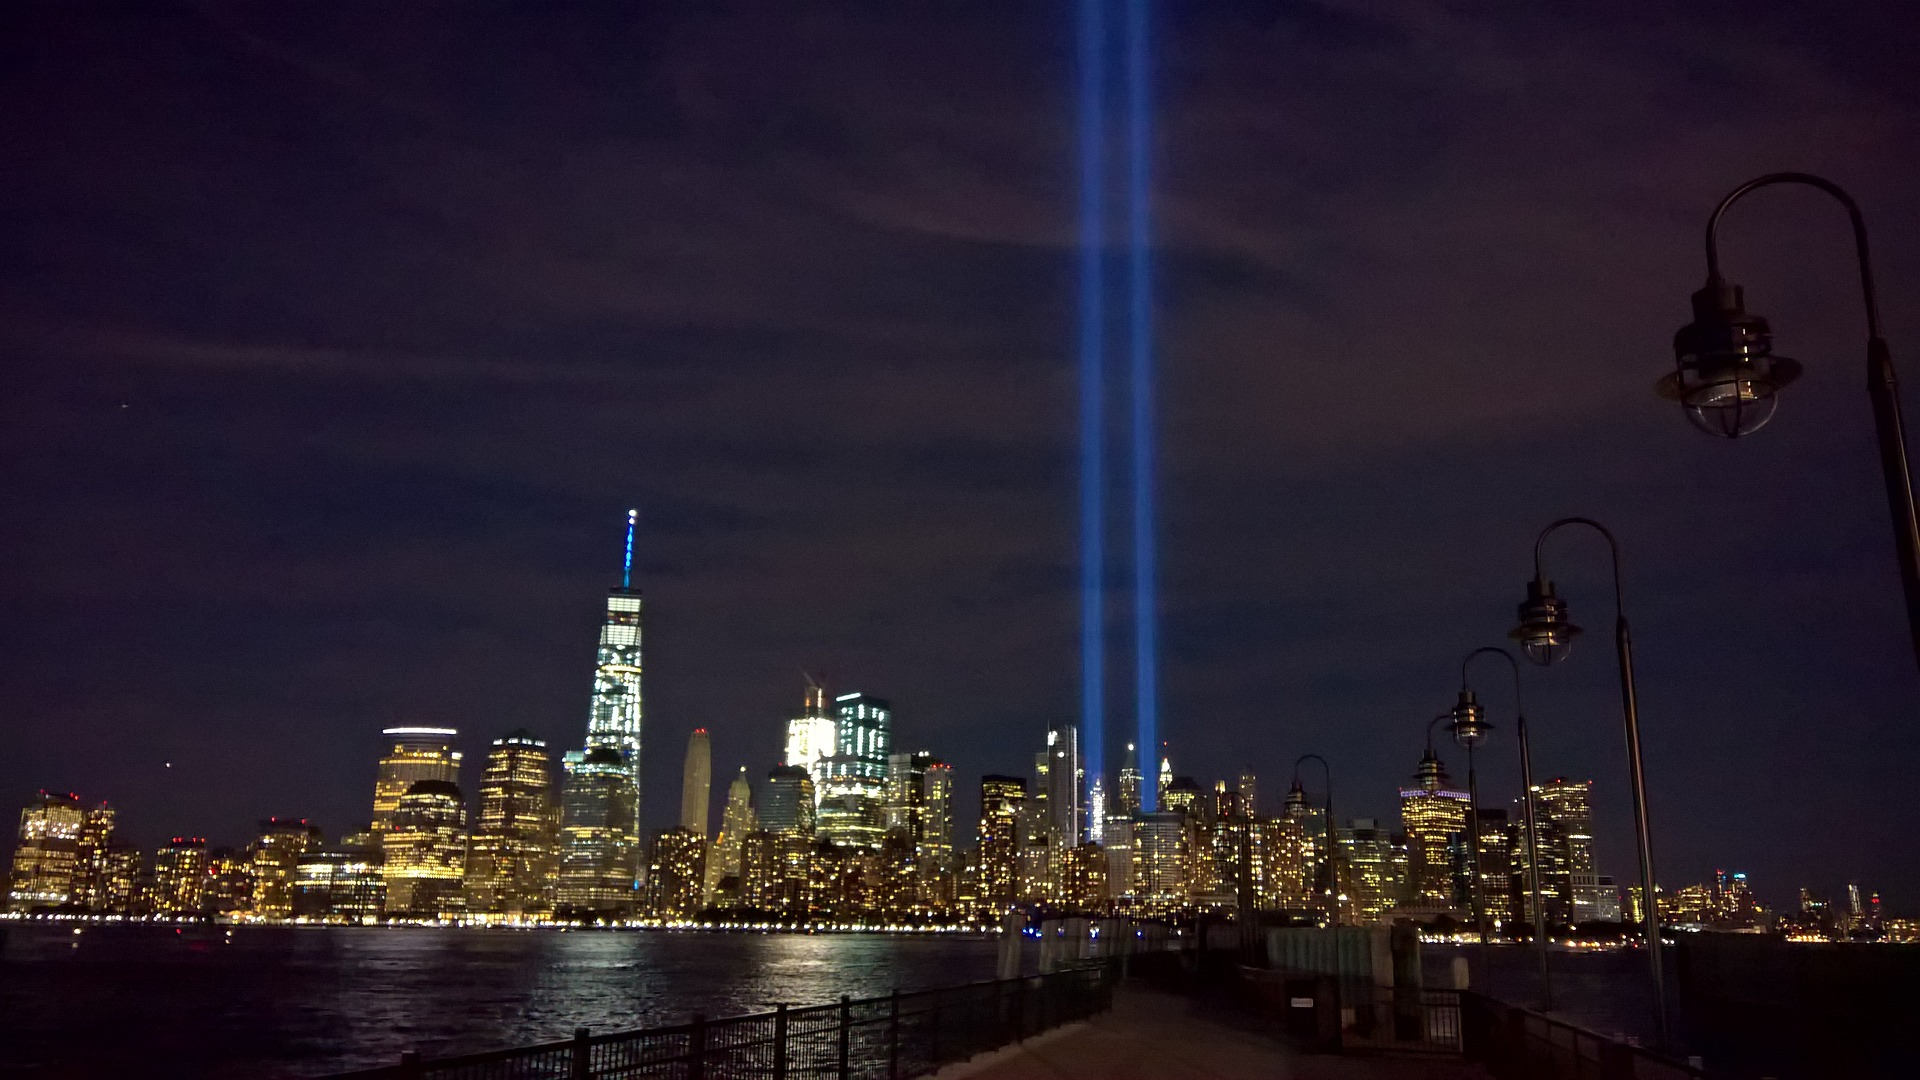 NYC Tribute in lights